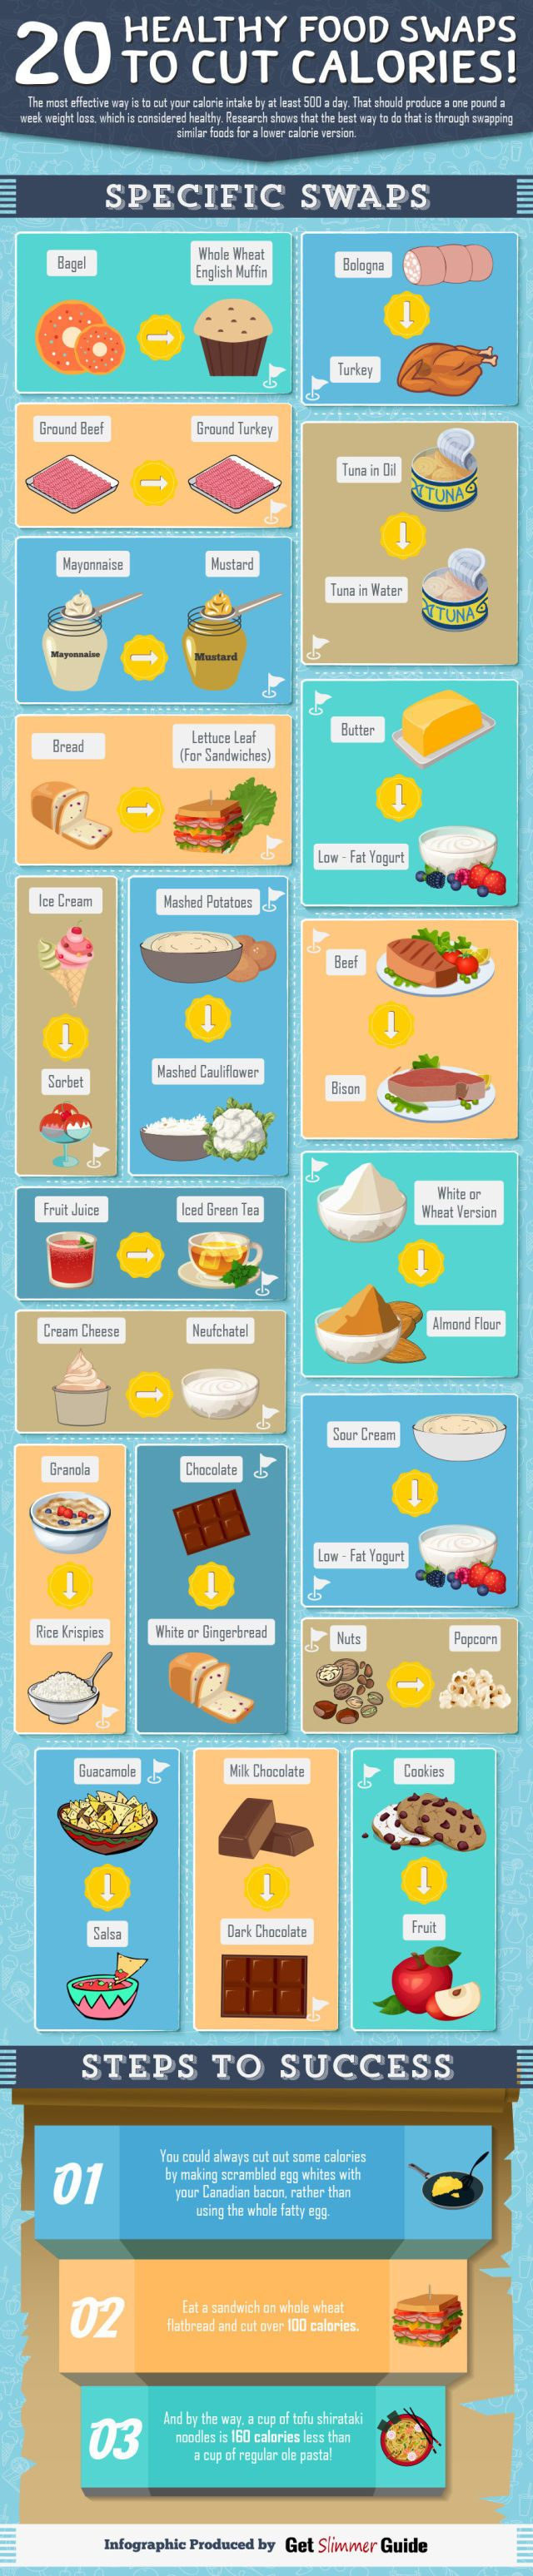 Cut 500 calories a day with a few sneaky healthy food swaps prima.co.uk